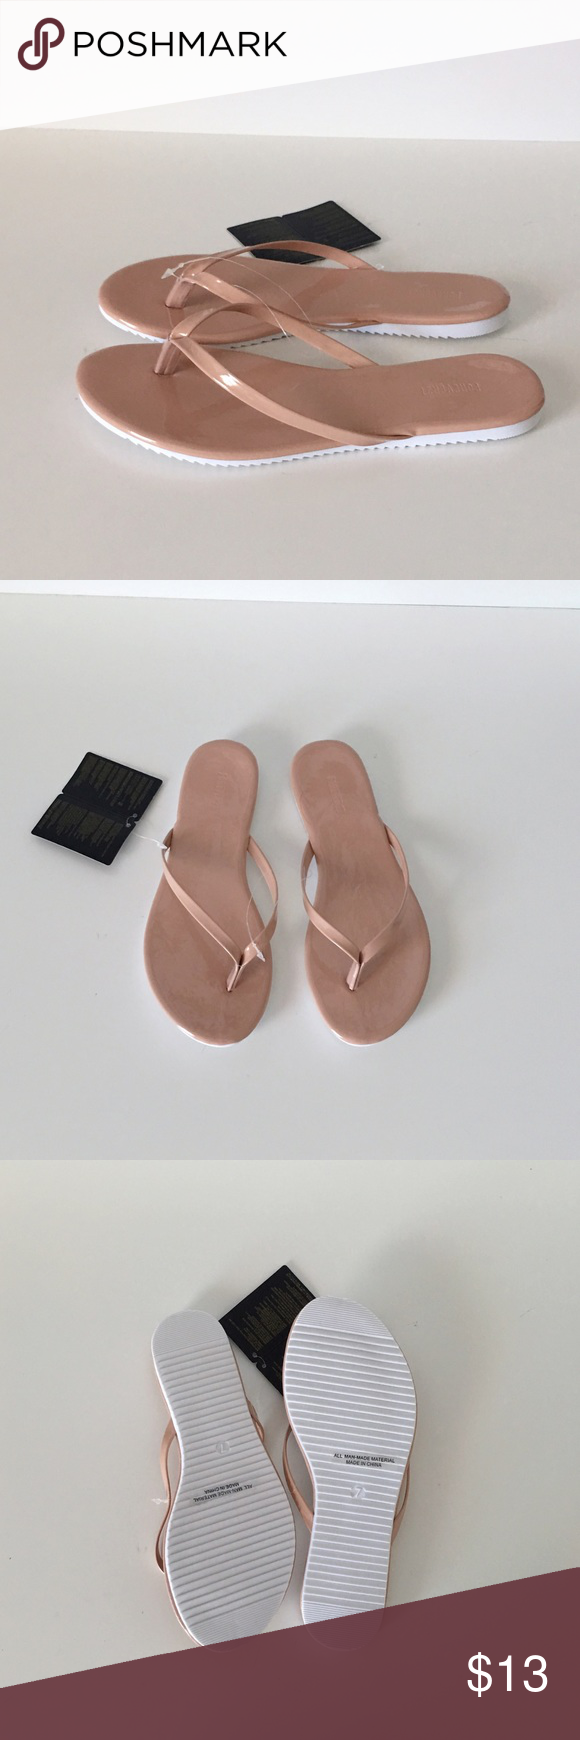 """NWT - BLUSH NUDE PATENT FLIP FLOPS NWT - Blush nude patent flip flop thong sandals with white soles. All man made materials. *Approx .25""""heel. Perfect comfy and stylish sandal that beautifully elongates your legs and goes with any outfit! Never worn, only tried on. Sold as is. Final Sale.   ❌NO TRADES/Offsite Transactions/Other Websites ✅All Price Negotiations are handled strictly through the OFFER Feature Only. Lowball offers will be ignored Shoes Sandals"""